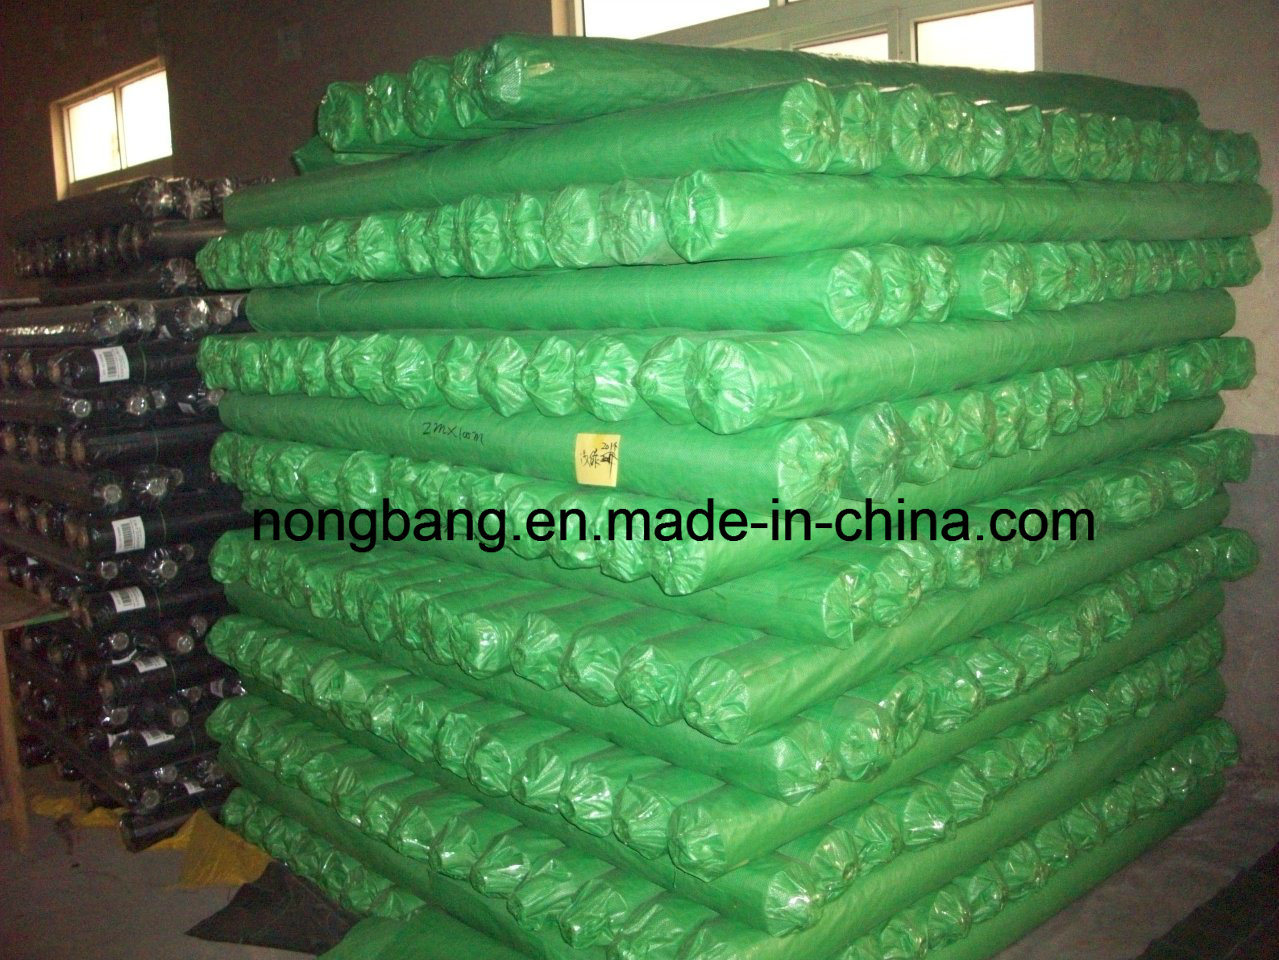 Garden PP Woven Geotextile Fabric 1.05m*100m/Roll; Ground Cover; Weed Control Mat